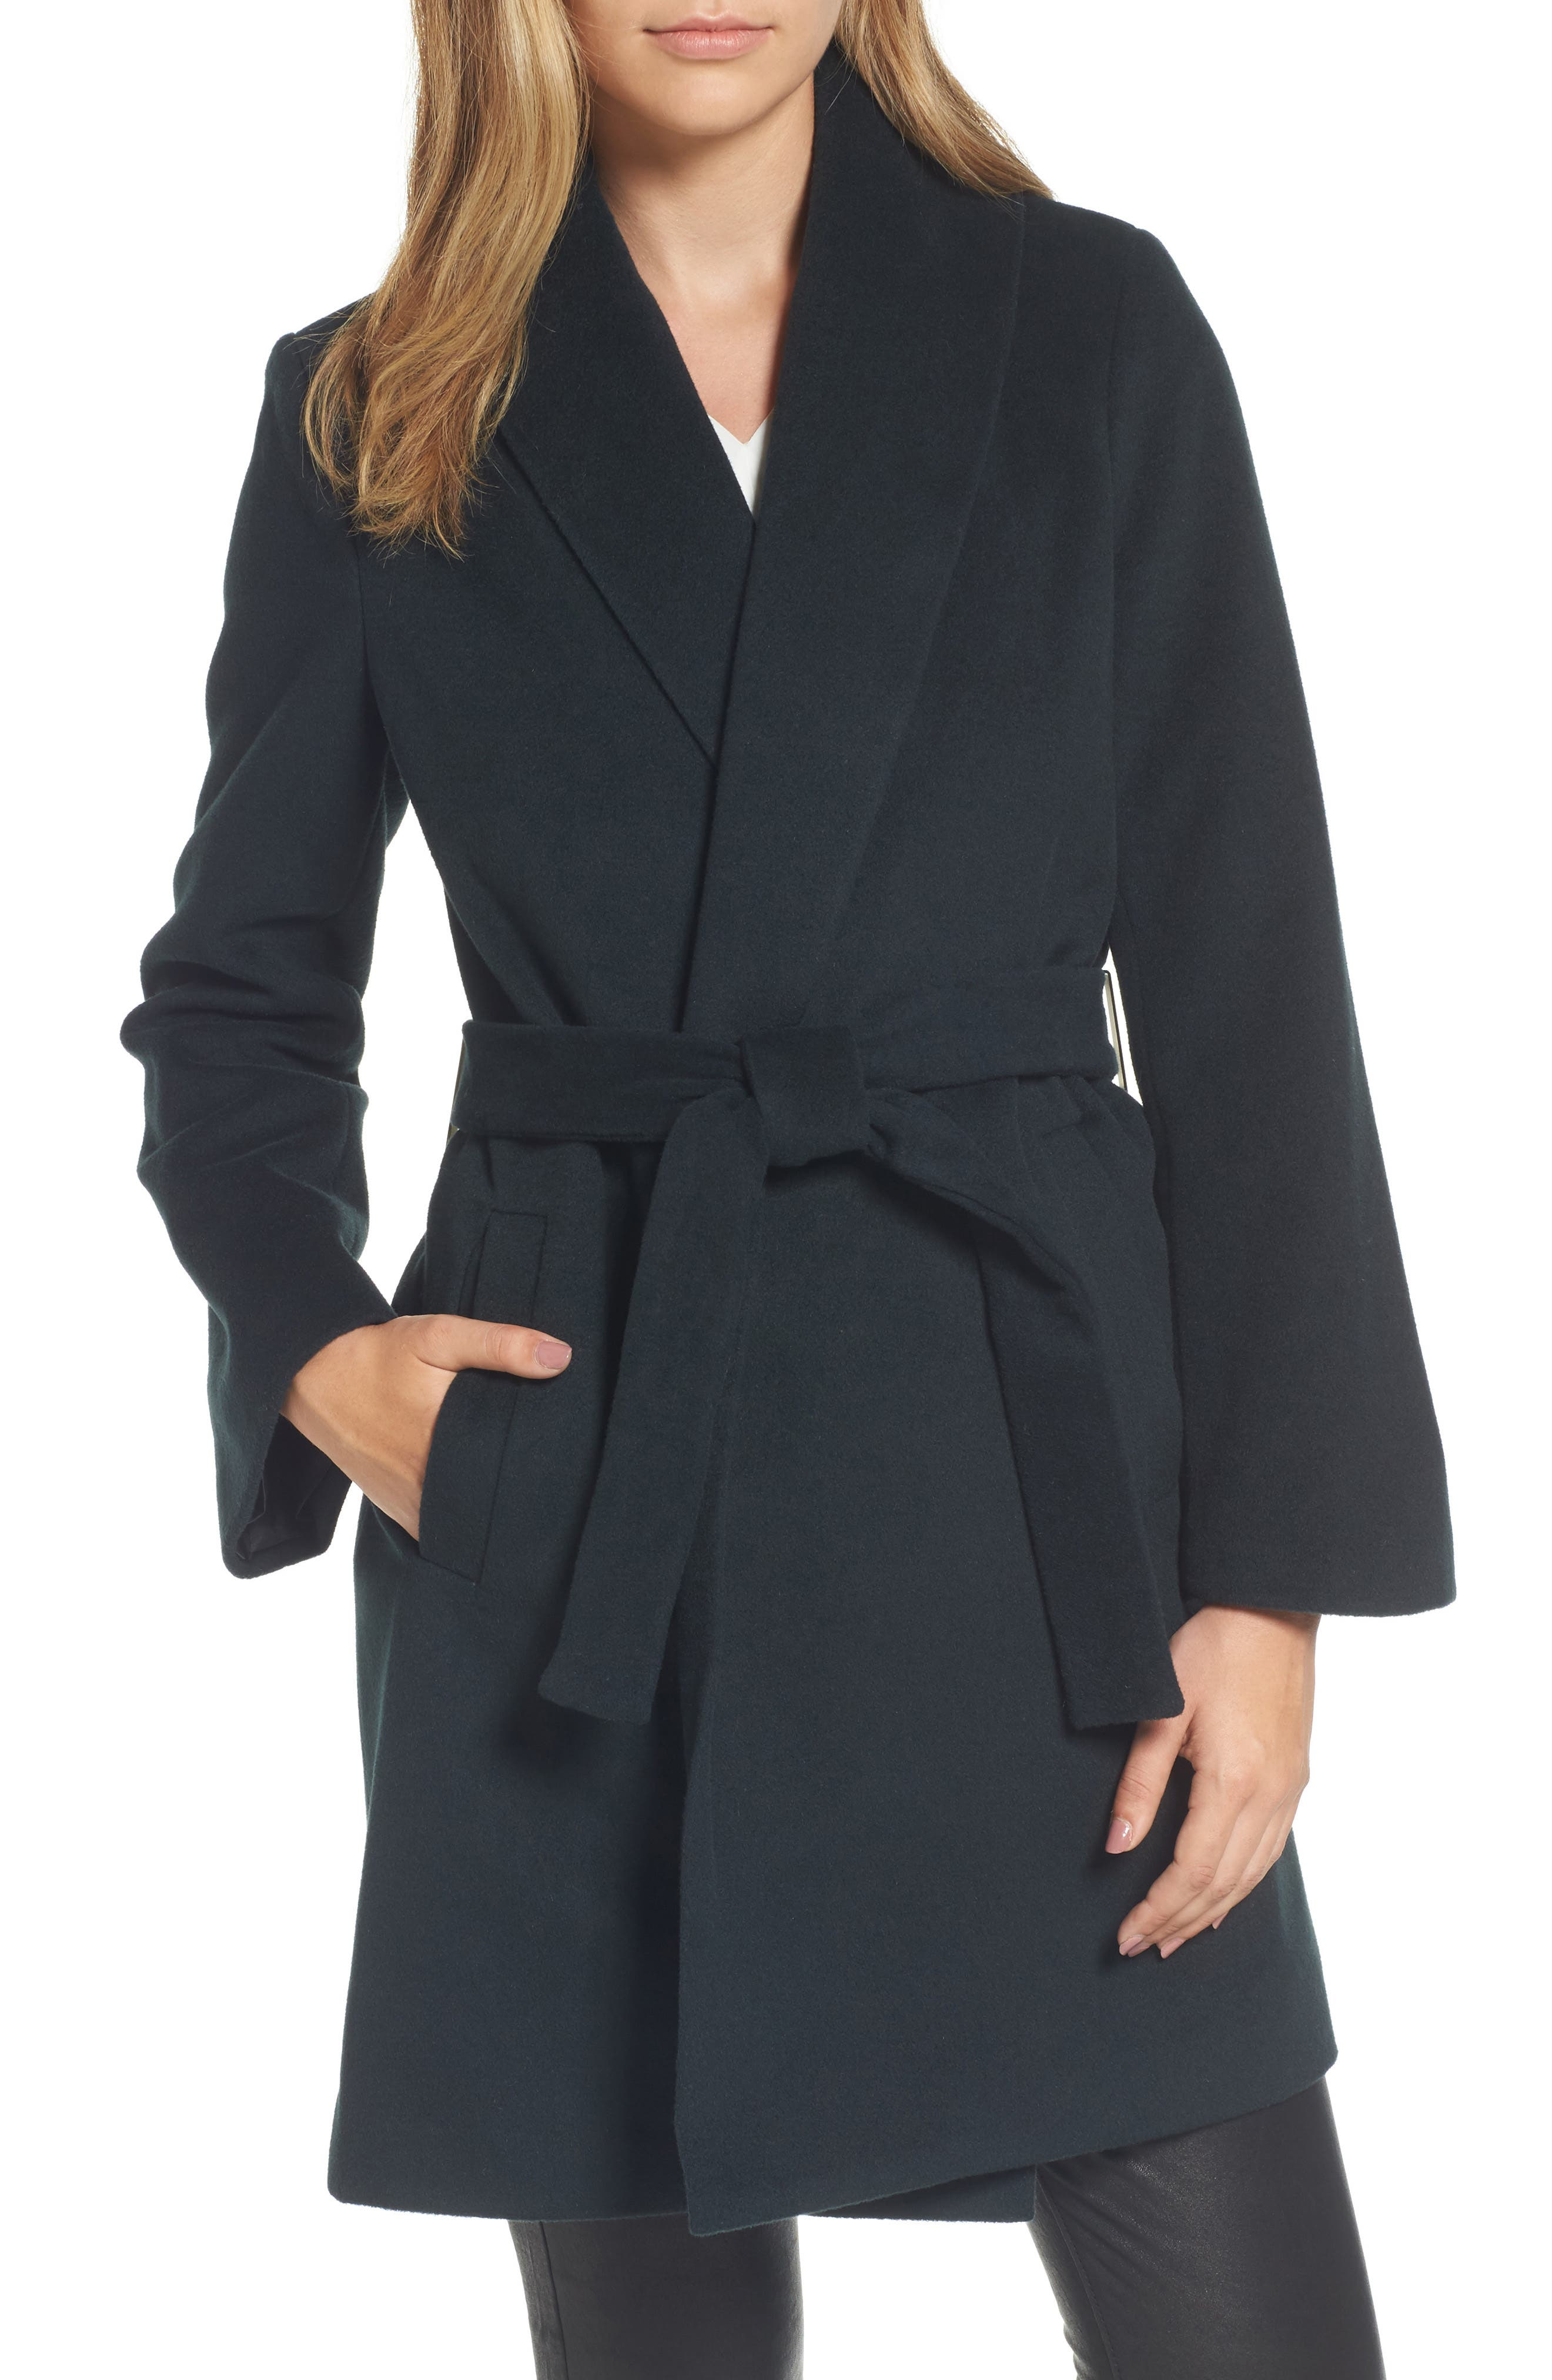 Green trench coat h&m